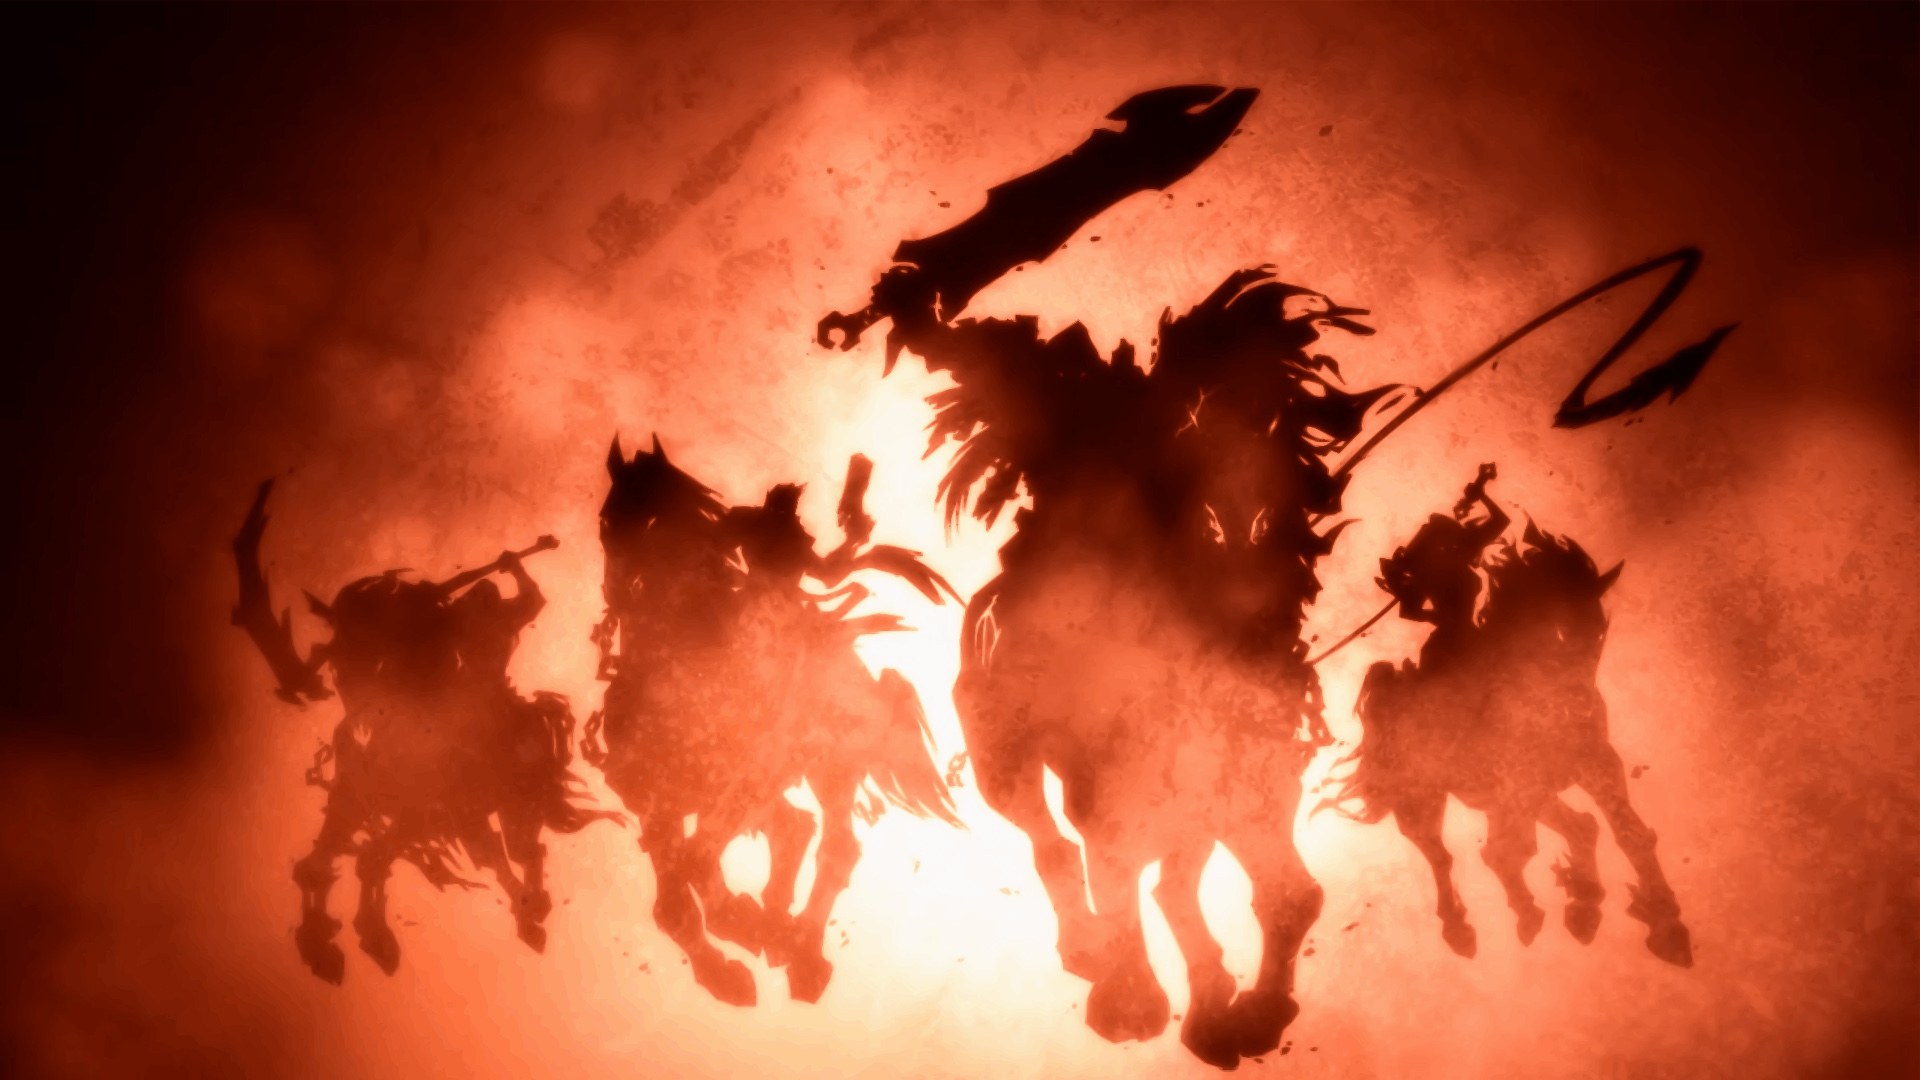 Darksiders Video Game 1262.89 Kb